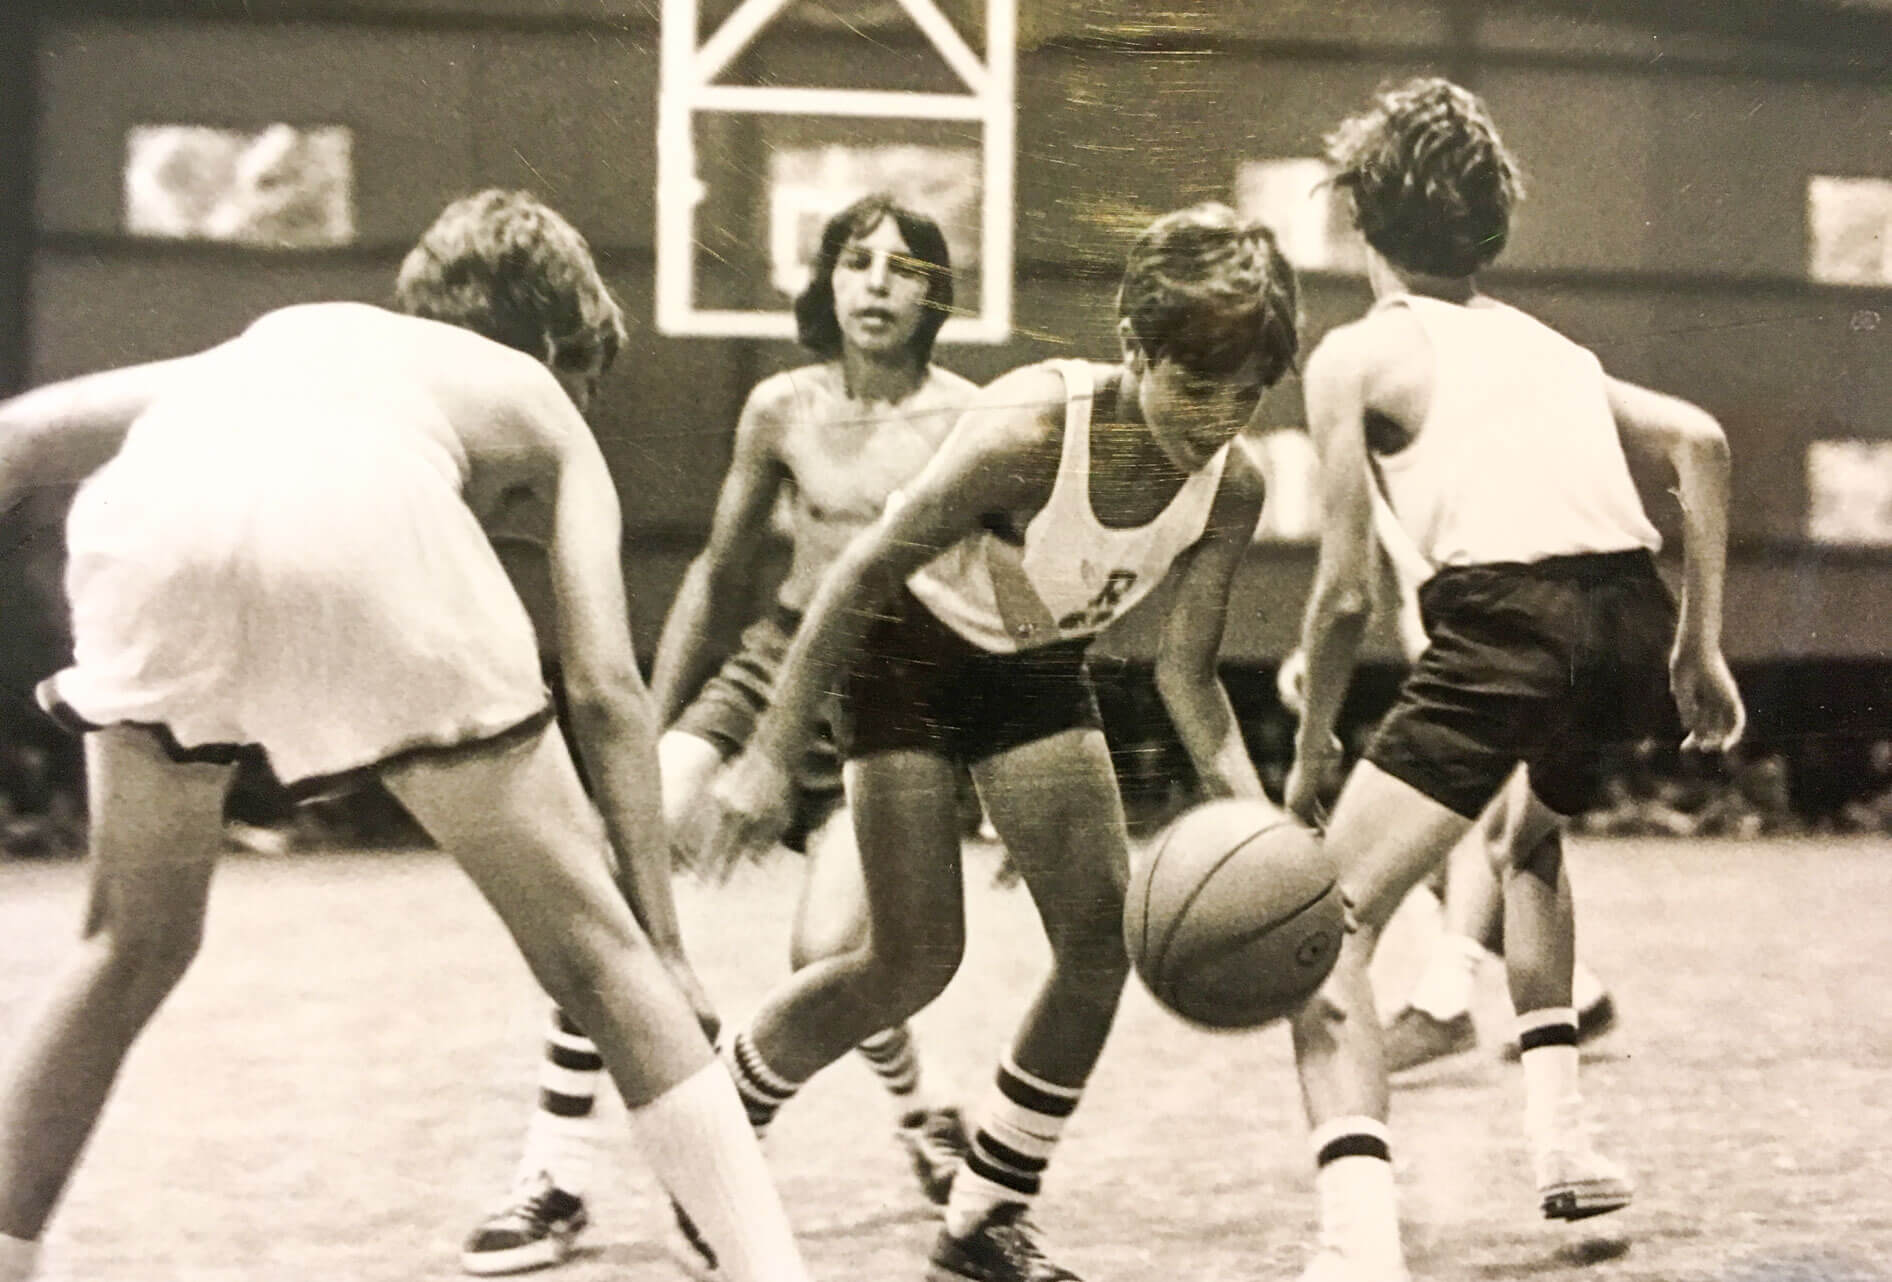 Black and white photo of campers playing basketball